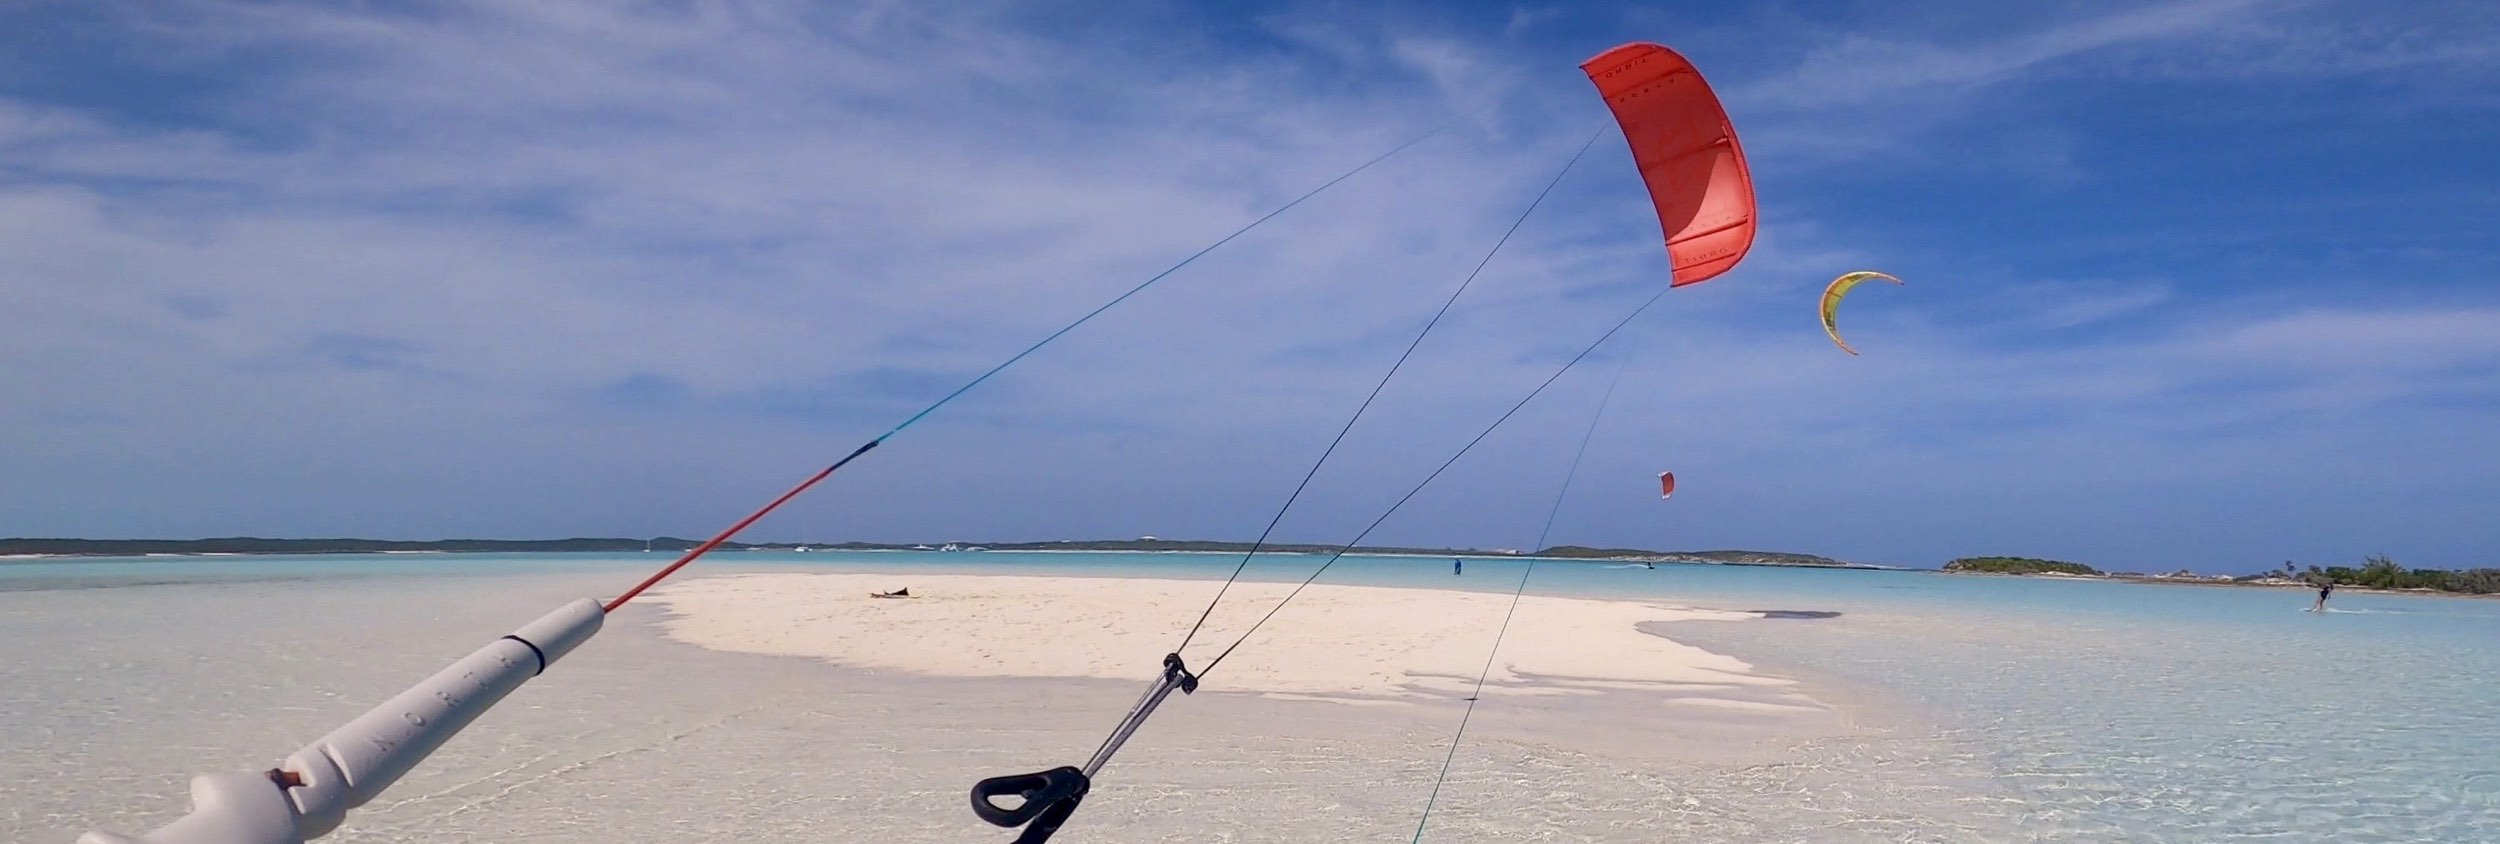 North kite in paradise